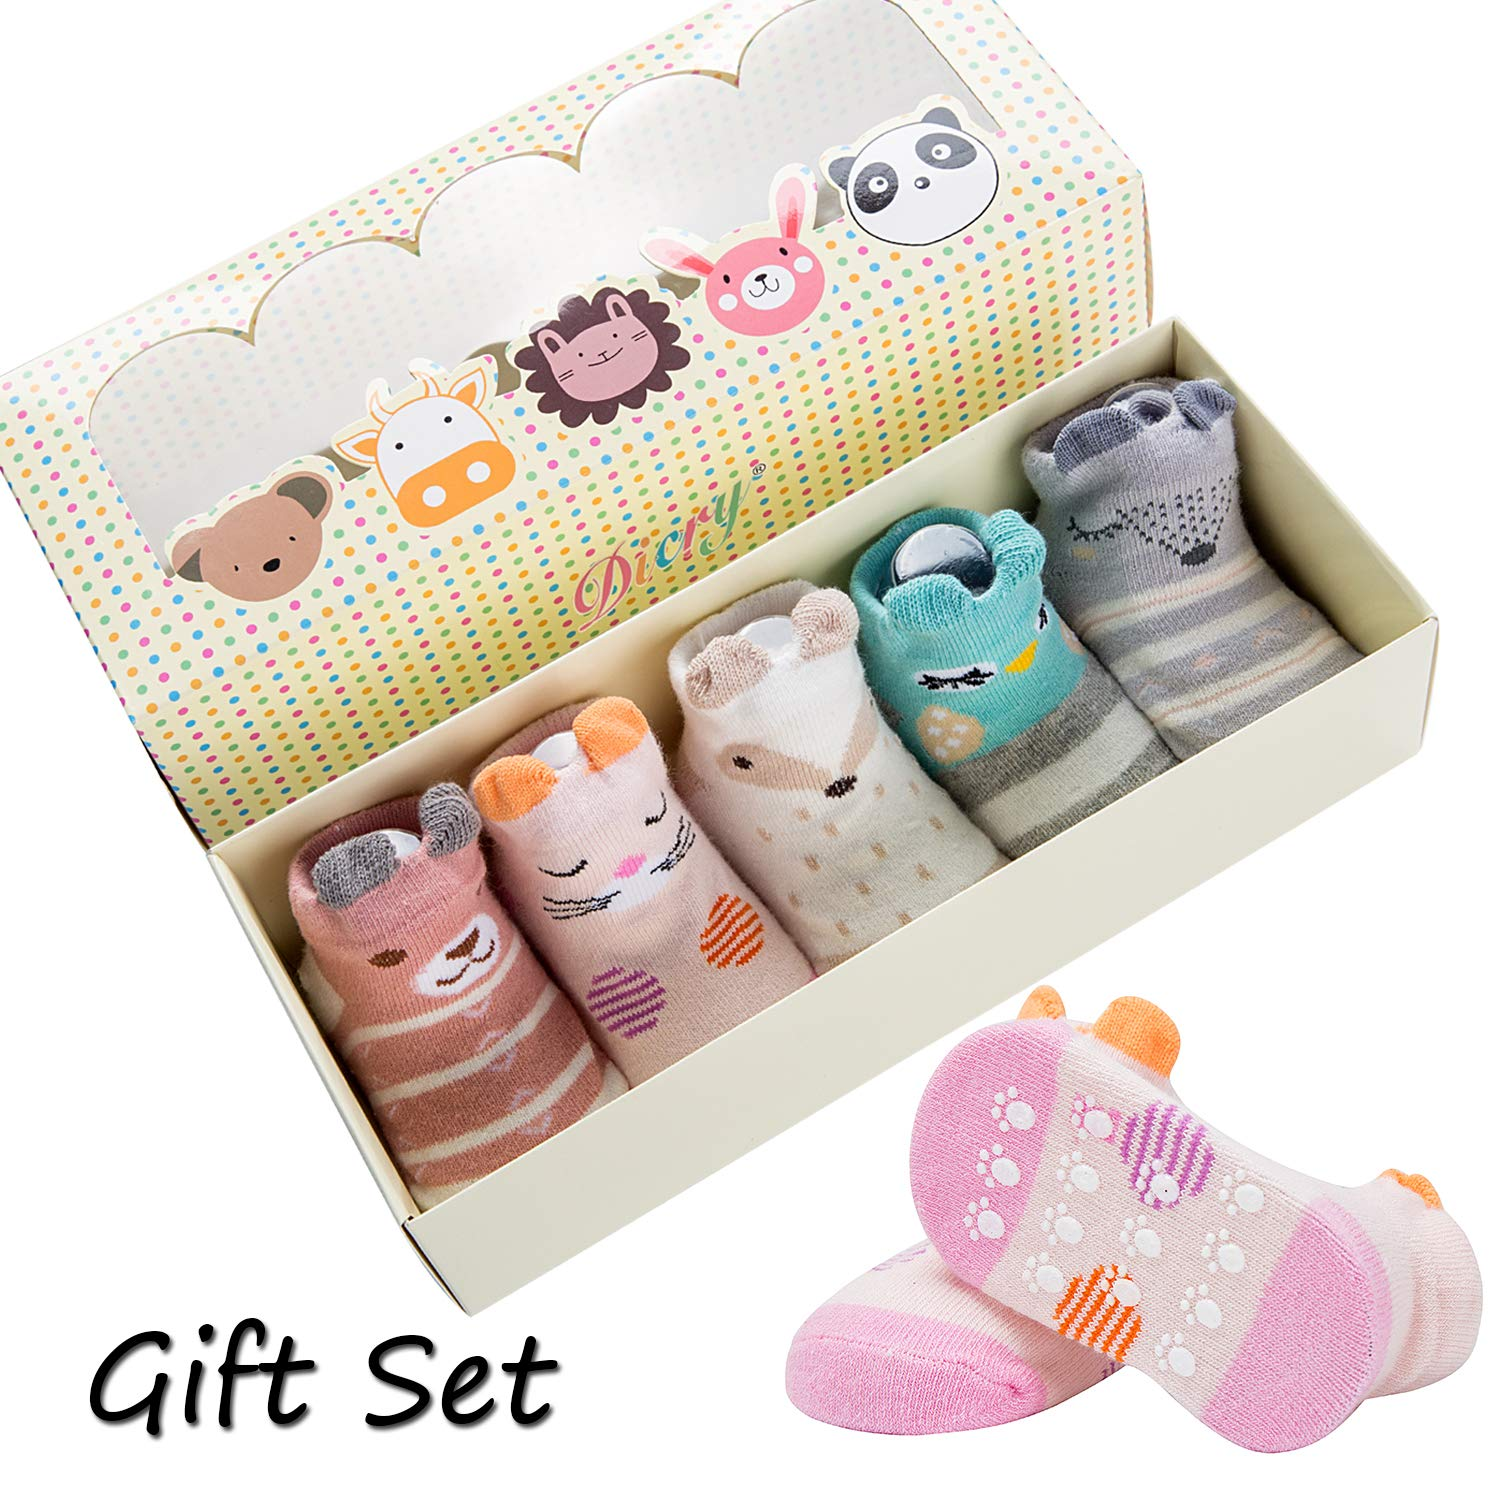 Dicry 5 Pairs Infant Baby Girls Walking Socks Set Grip Non Slip 6-18 Months